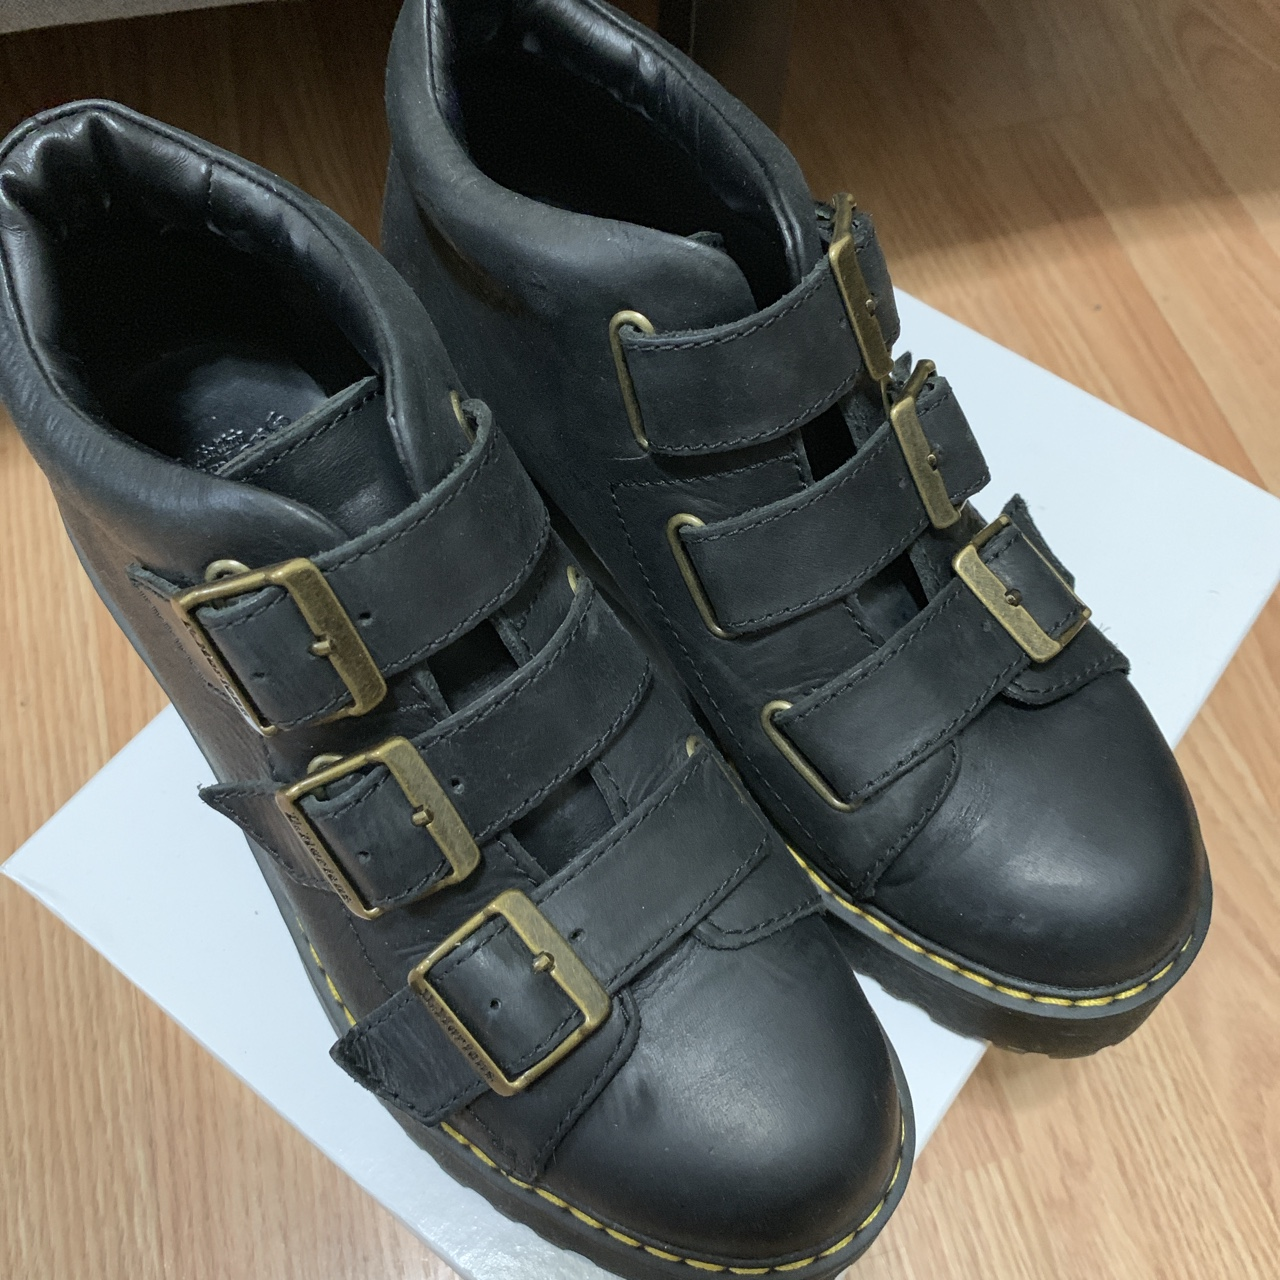 Dr.Martens Coppola Boots in US size 7